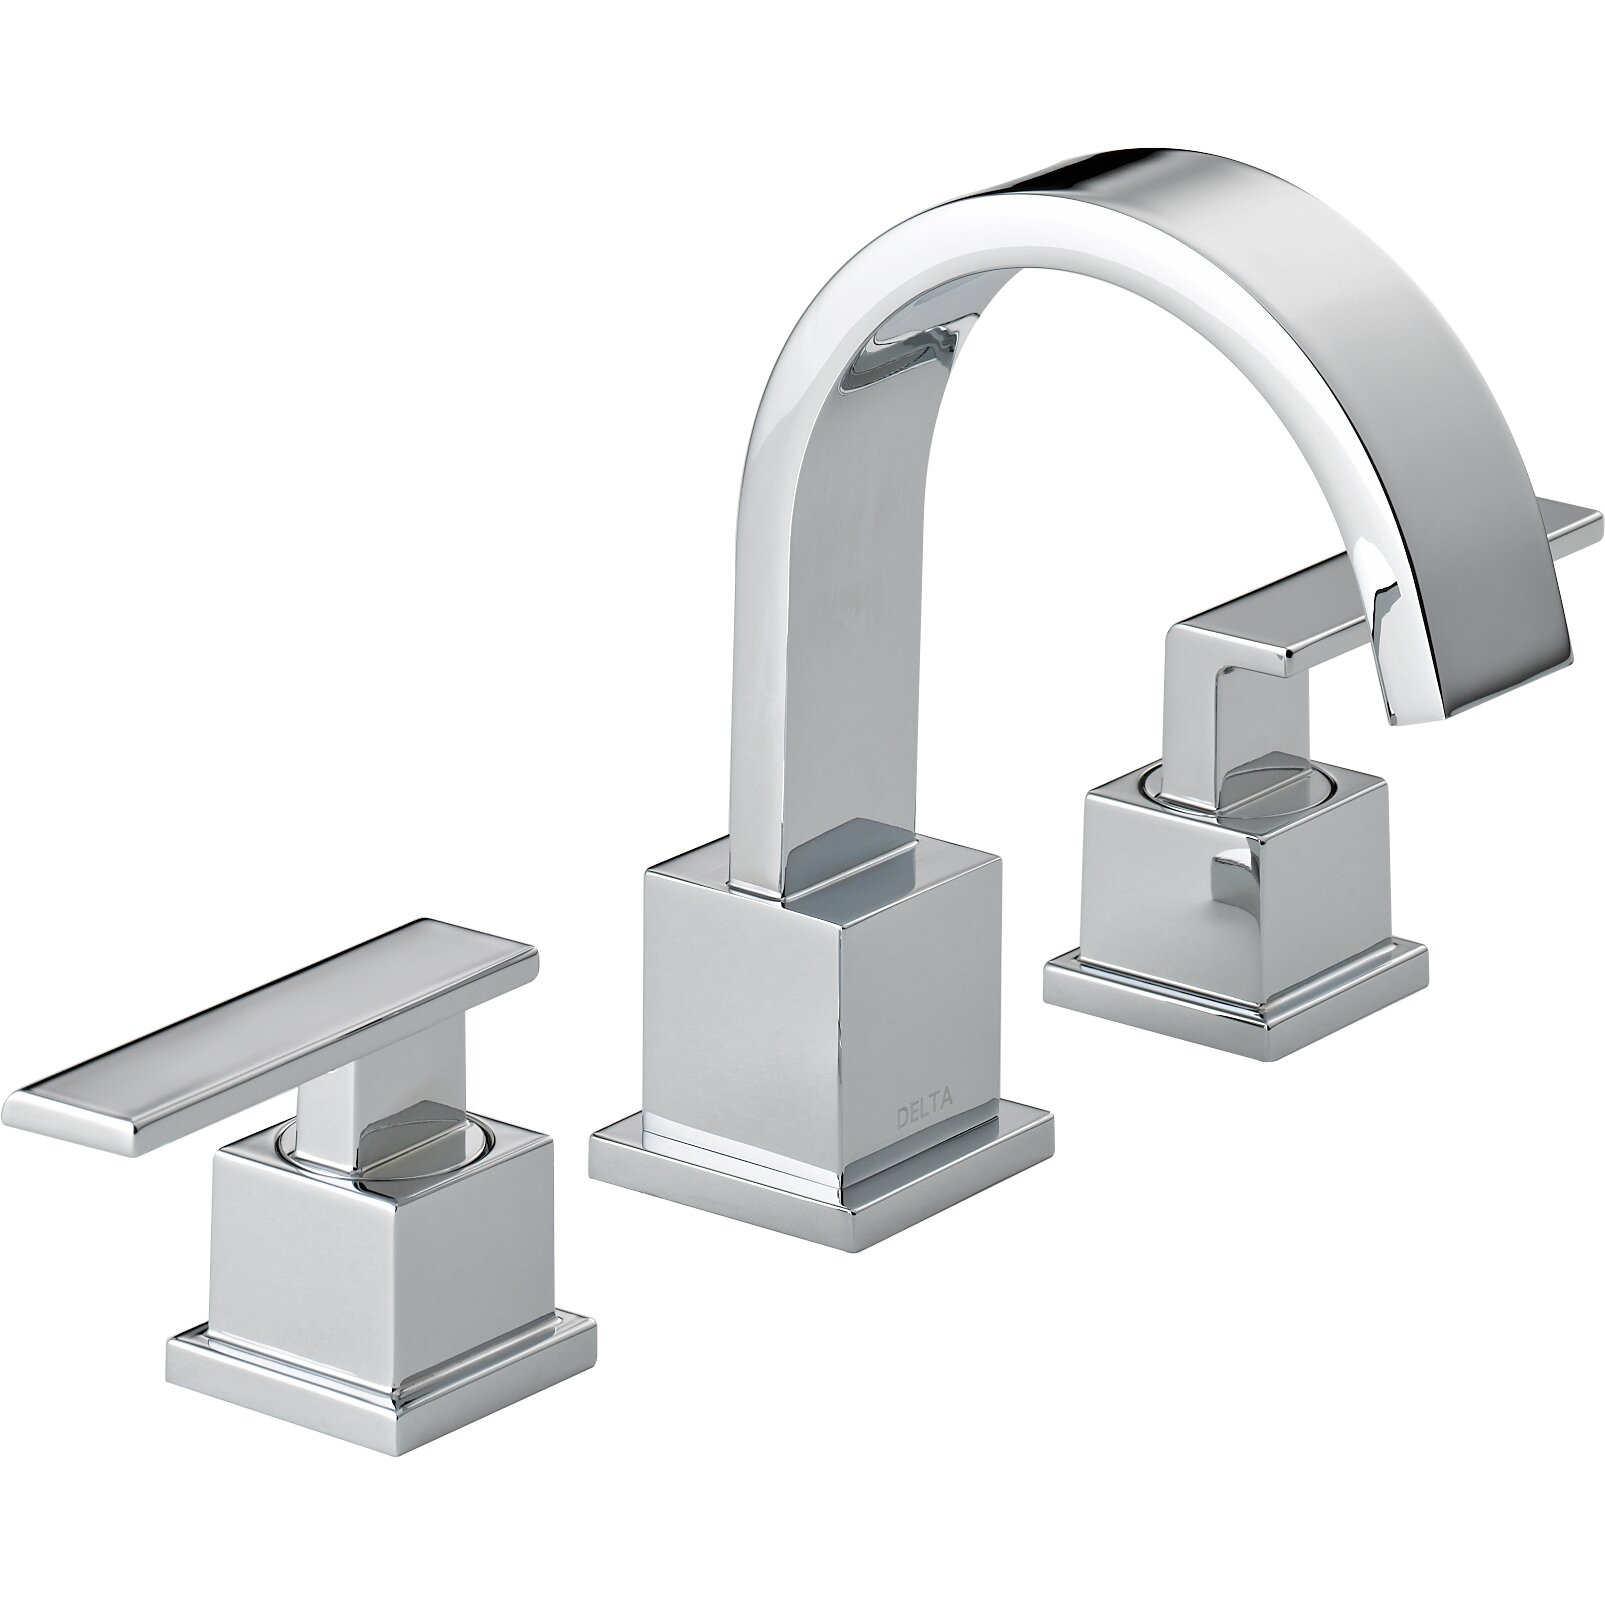 Bathroom Faucet Delta Vero Two Handle Widespread Bathroom Faucet Reviews Wayfair